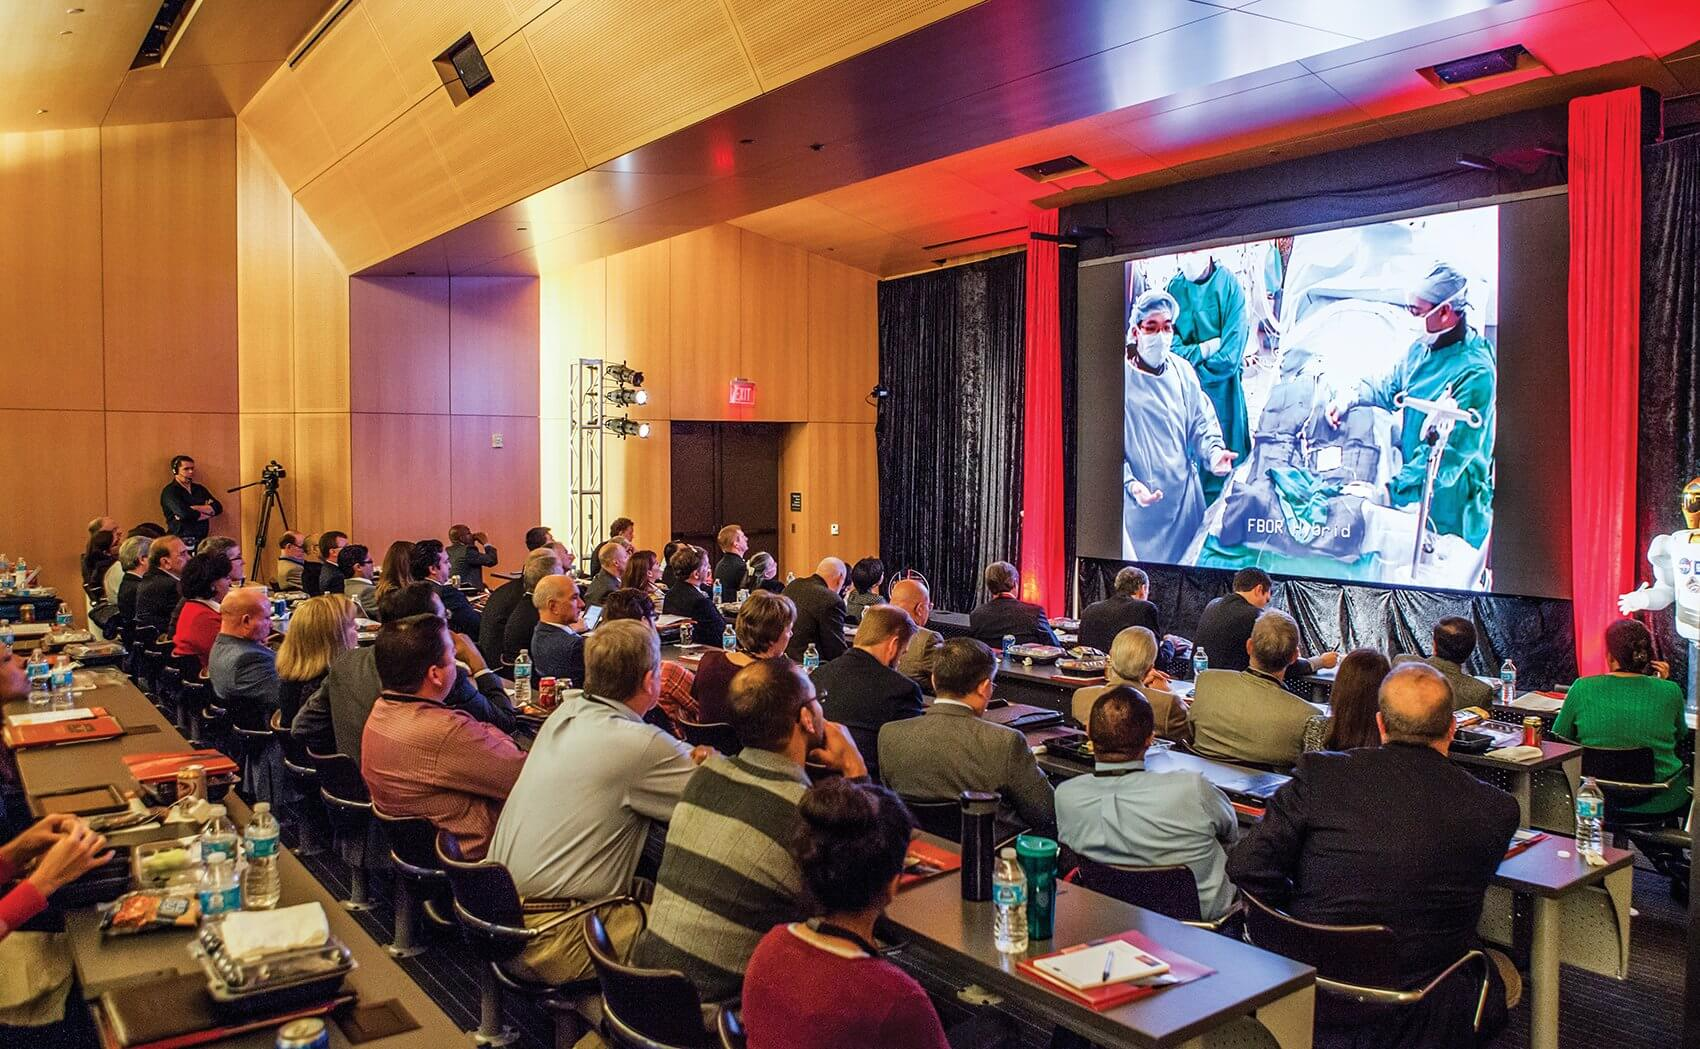 Attendees were able to watch a live transcatheter pulmonary valve replacement unfold right before their eyes.